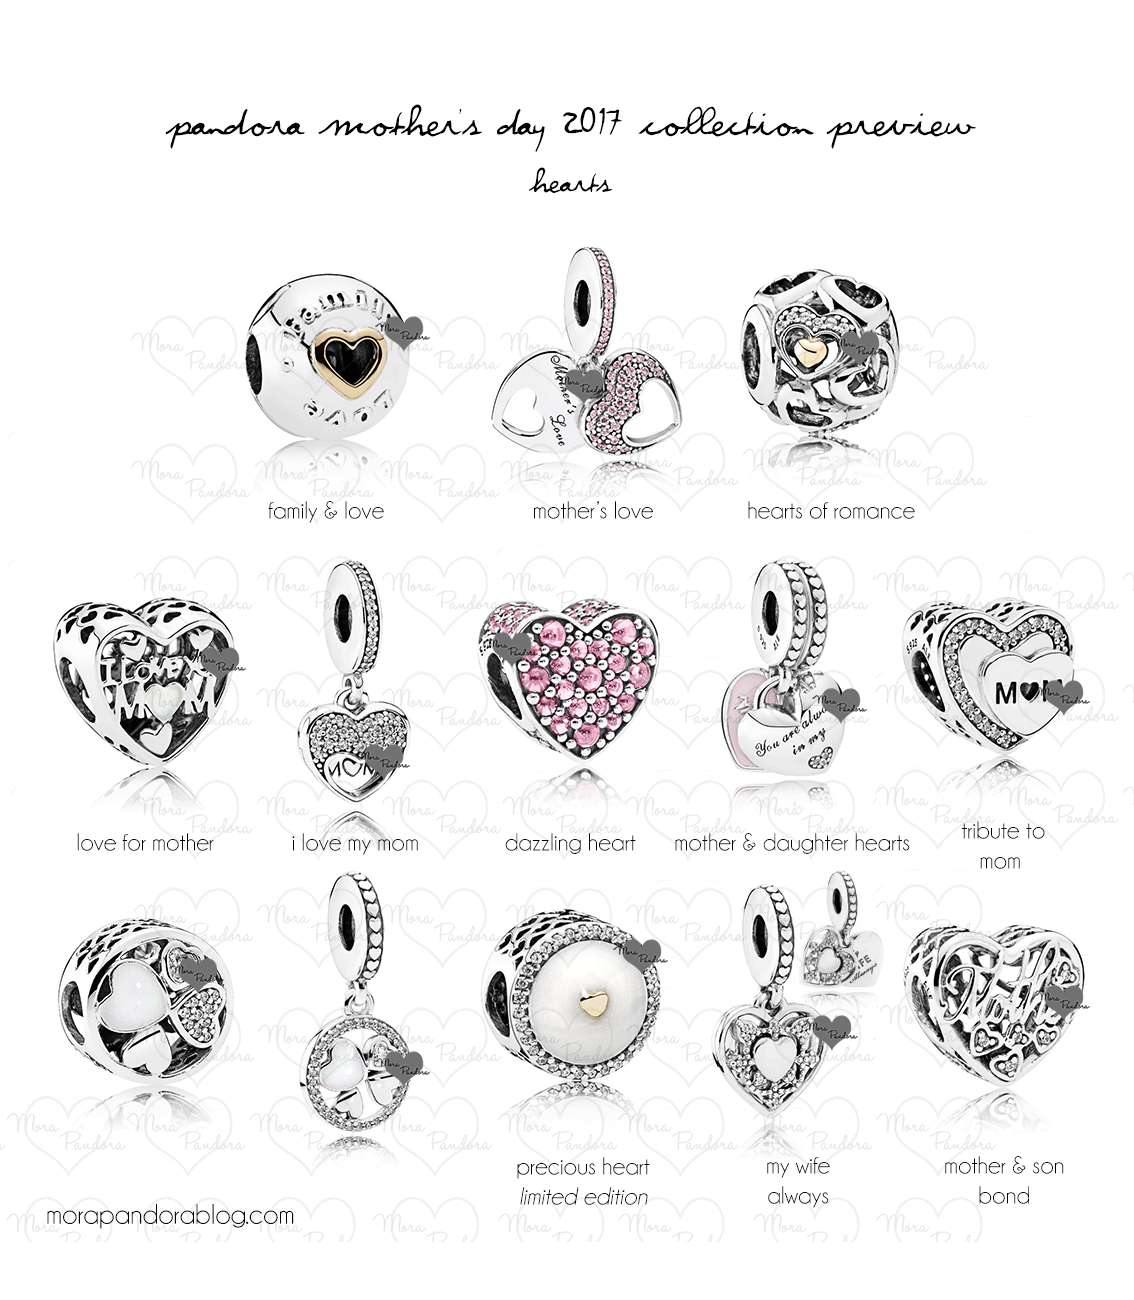 Pandora Mother S Day 2017 Collection